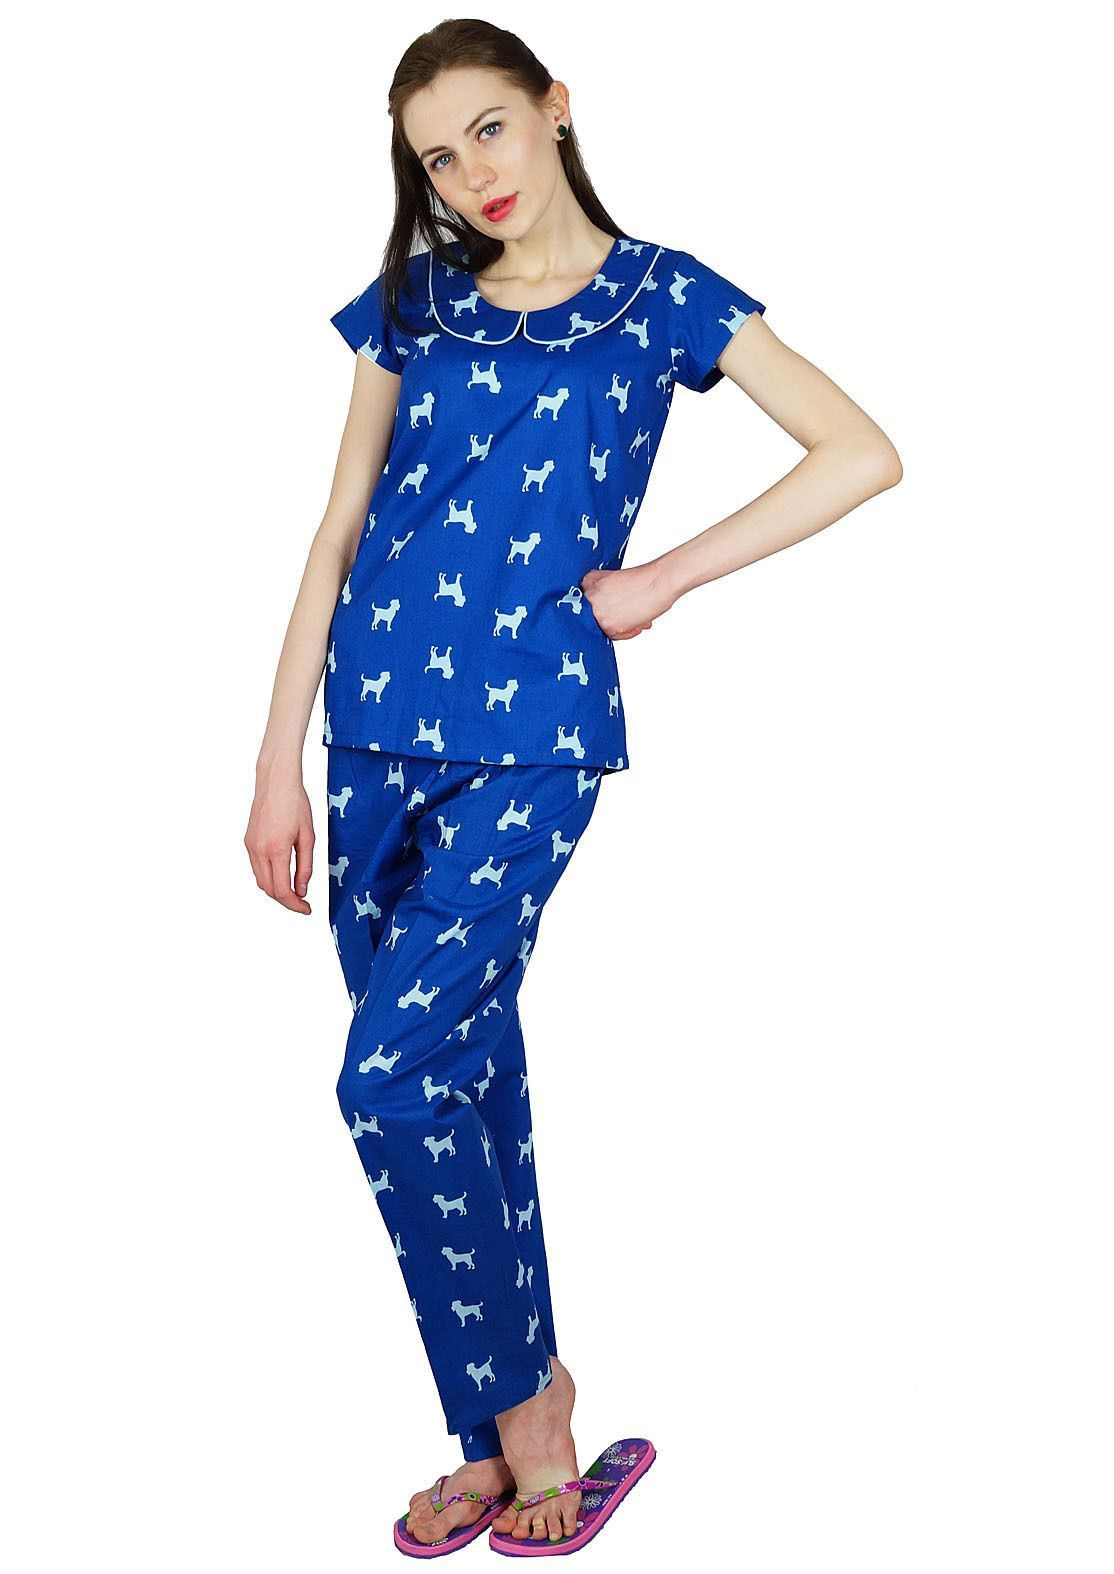 9974e4b1c6 Bimba Womens Traditional Pj Pyjama Set Cotton Lady Classic Intimates Night  Wear